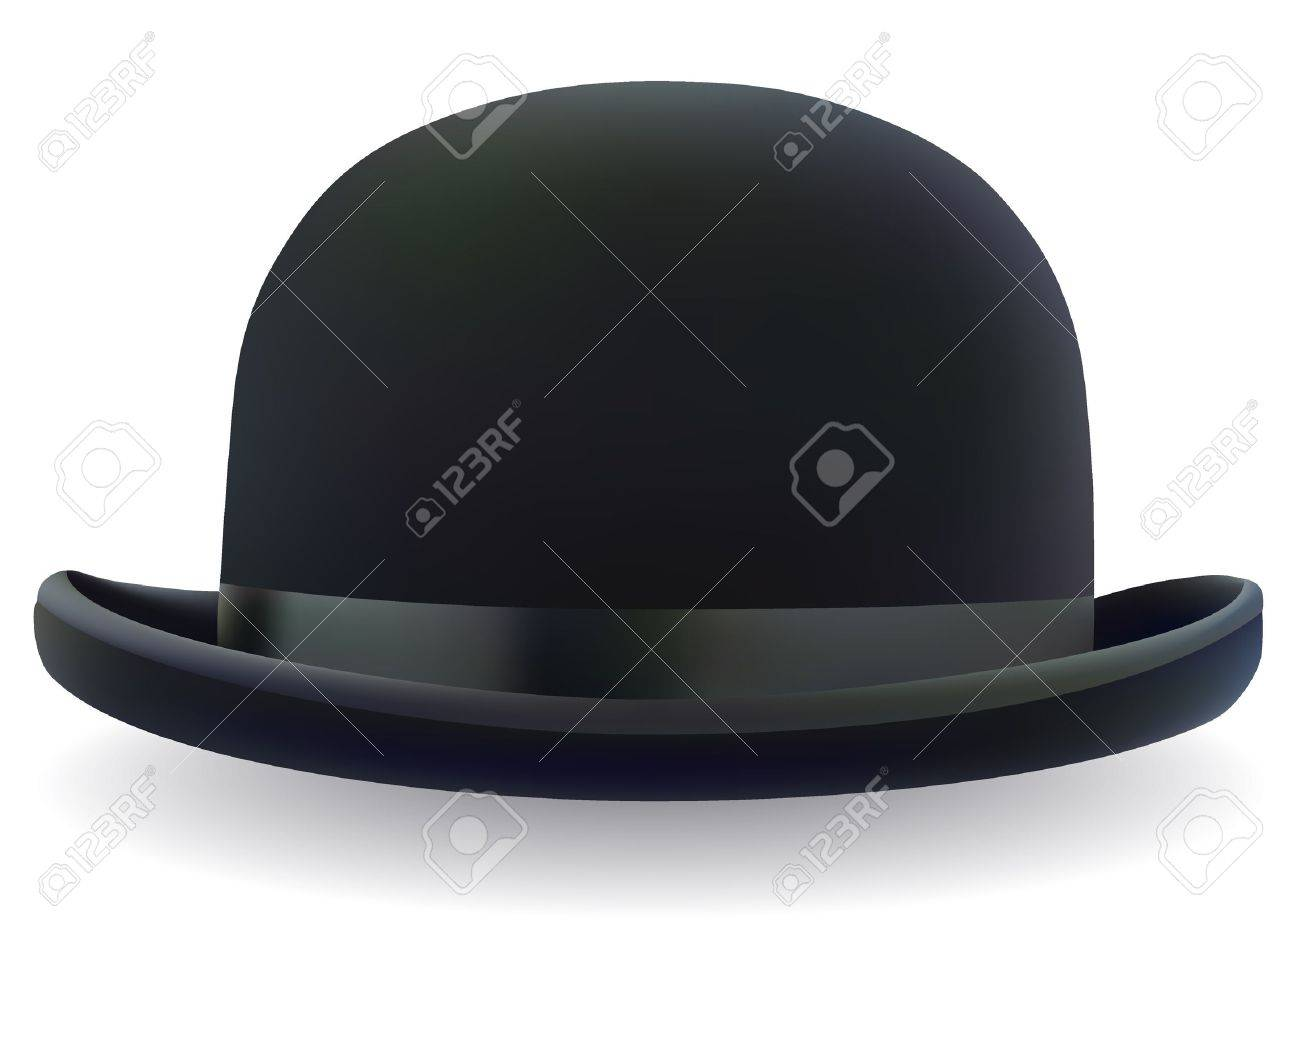 e84c0912525 A Black Bowler Hat On A White Background Royalty Free Cliparts ...